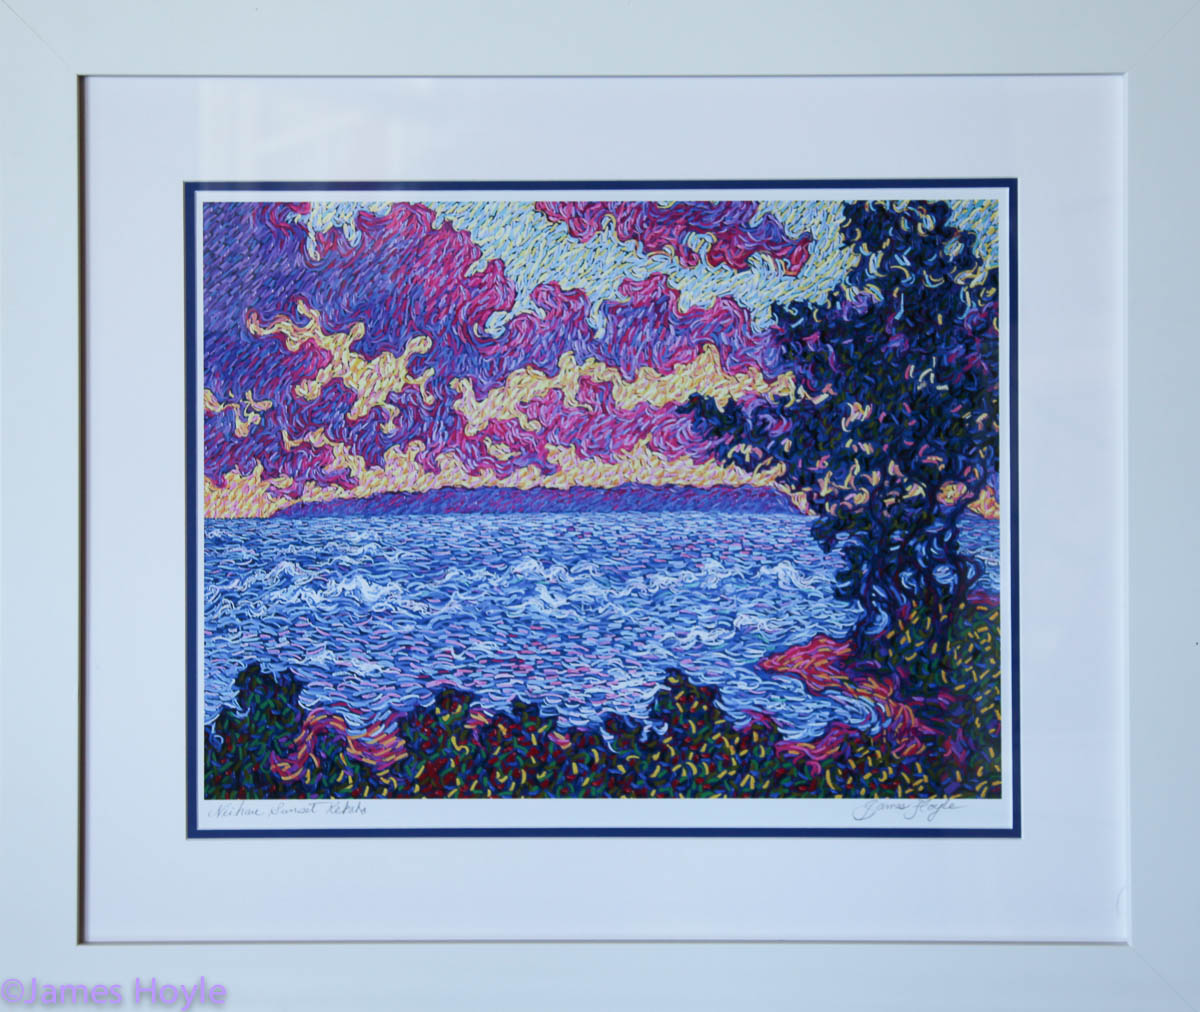 Niihau Sunset - titled and signed on photo archival paper with double mat in white frame.